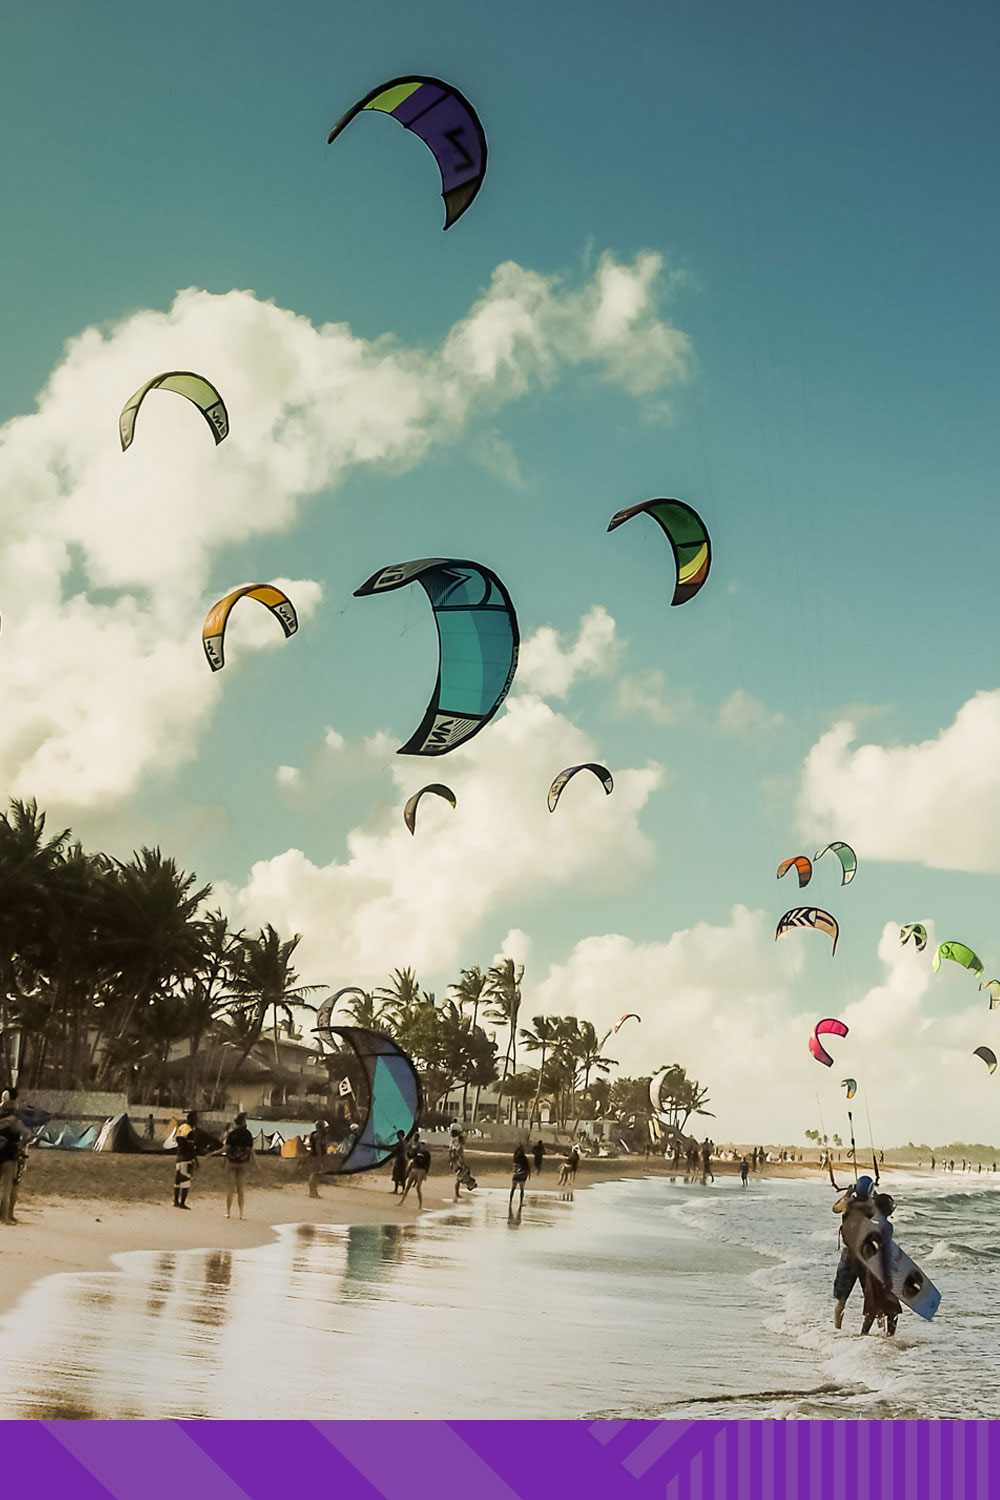 Image of kite surfers on a beach in Puerto Plata